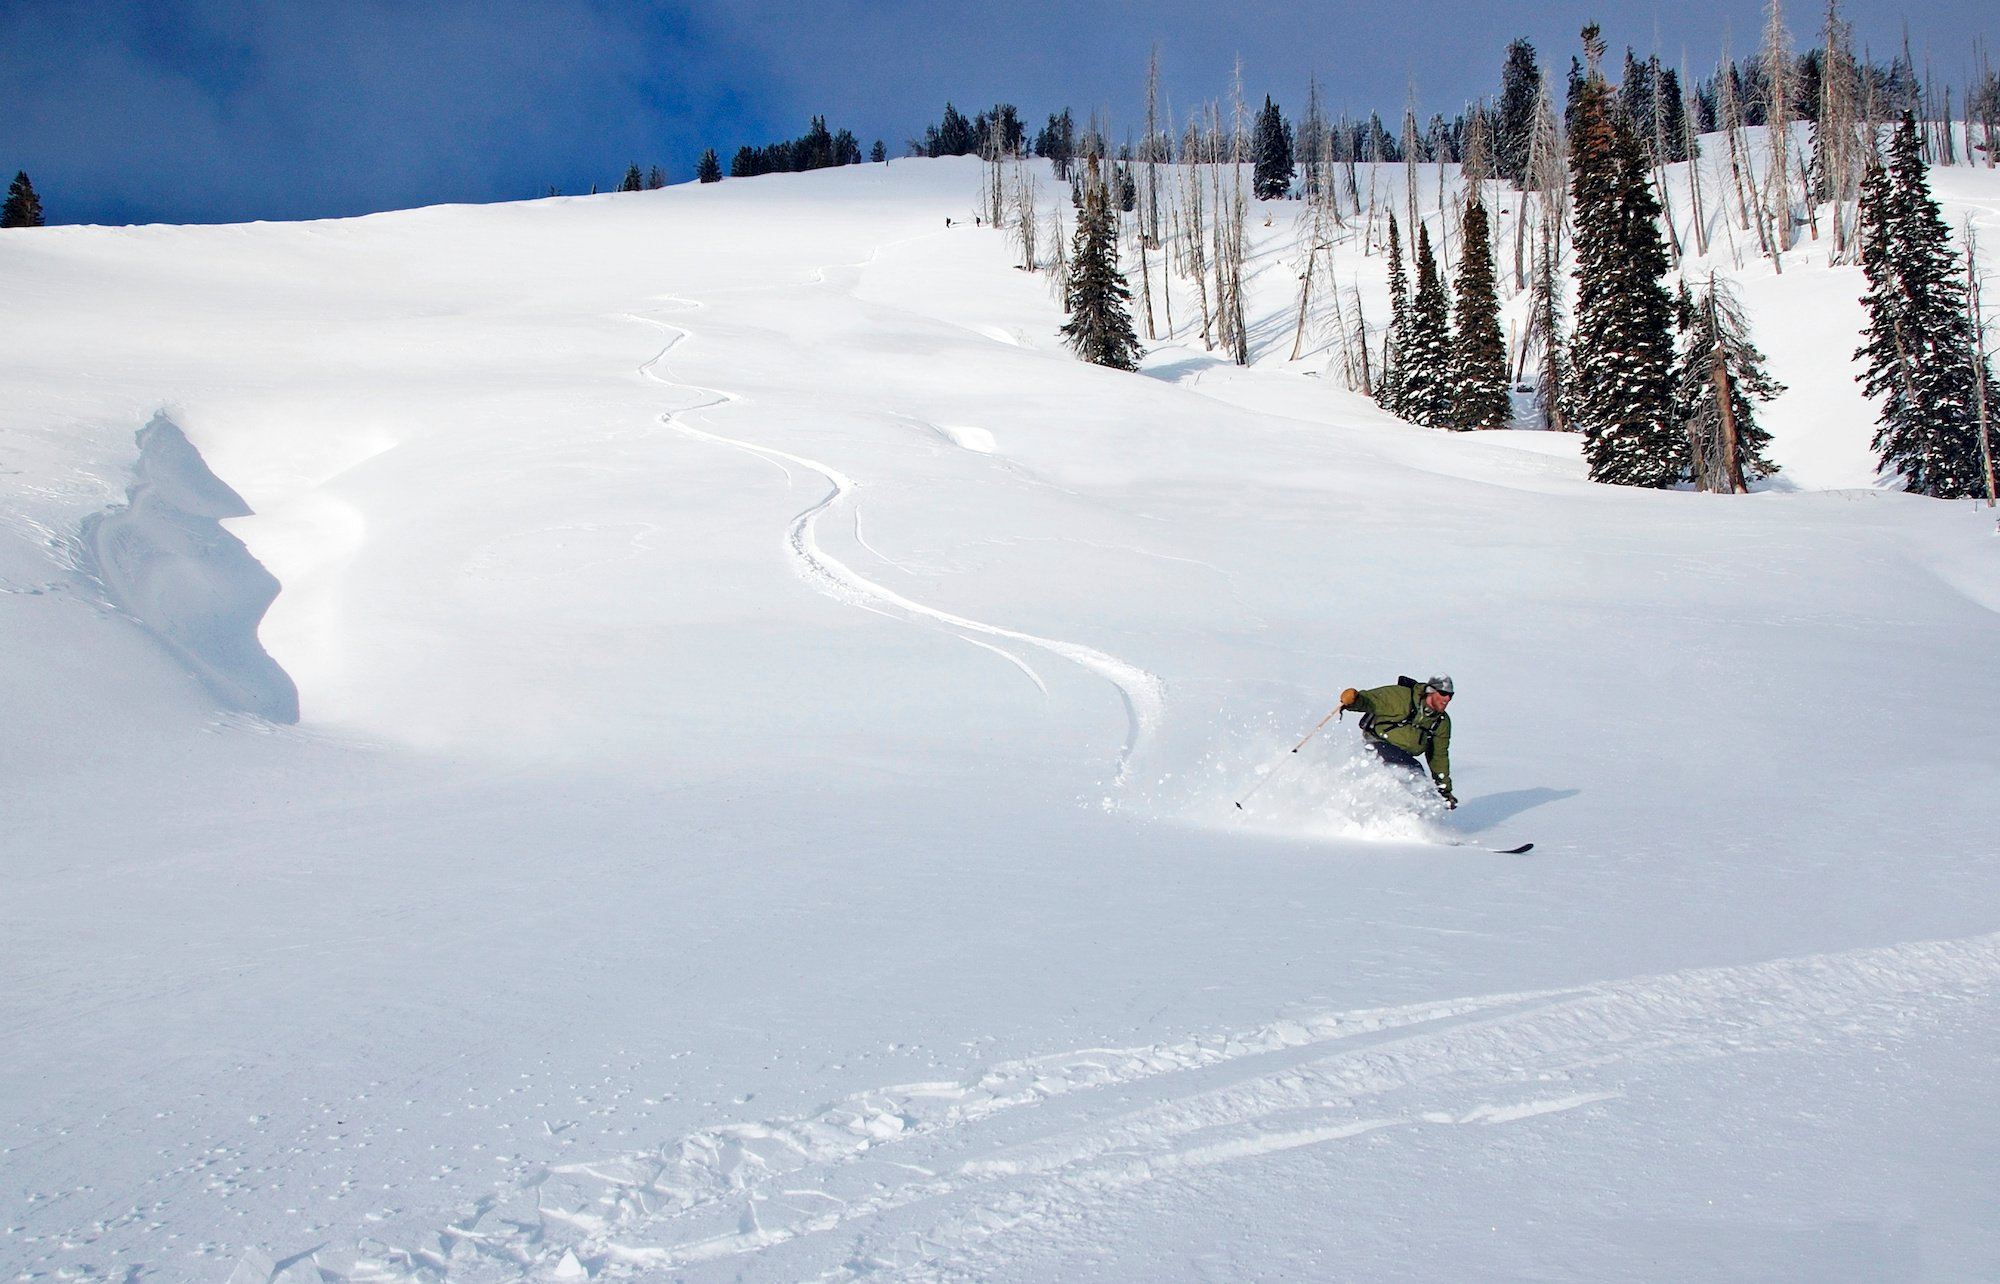 NOLS participant backcountry skis down a slope in a spray of powder